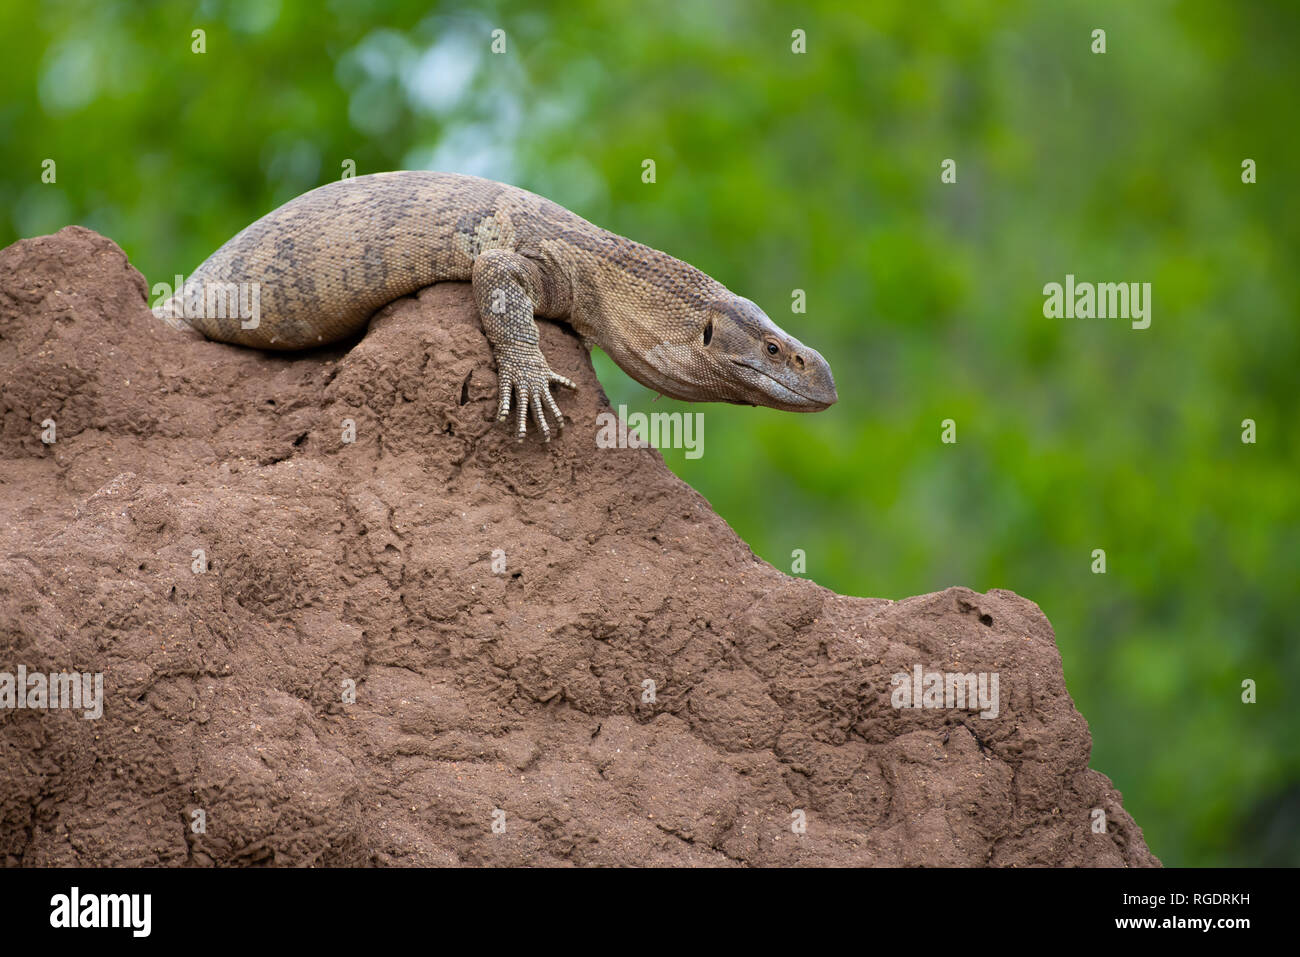 A monitor lizard makes itself comfortable on an ant heap in Kruger National Park, South Africa. - Stock Image